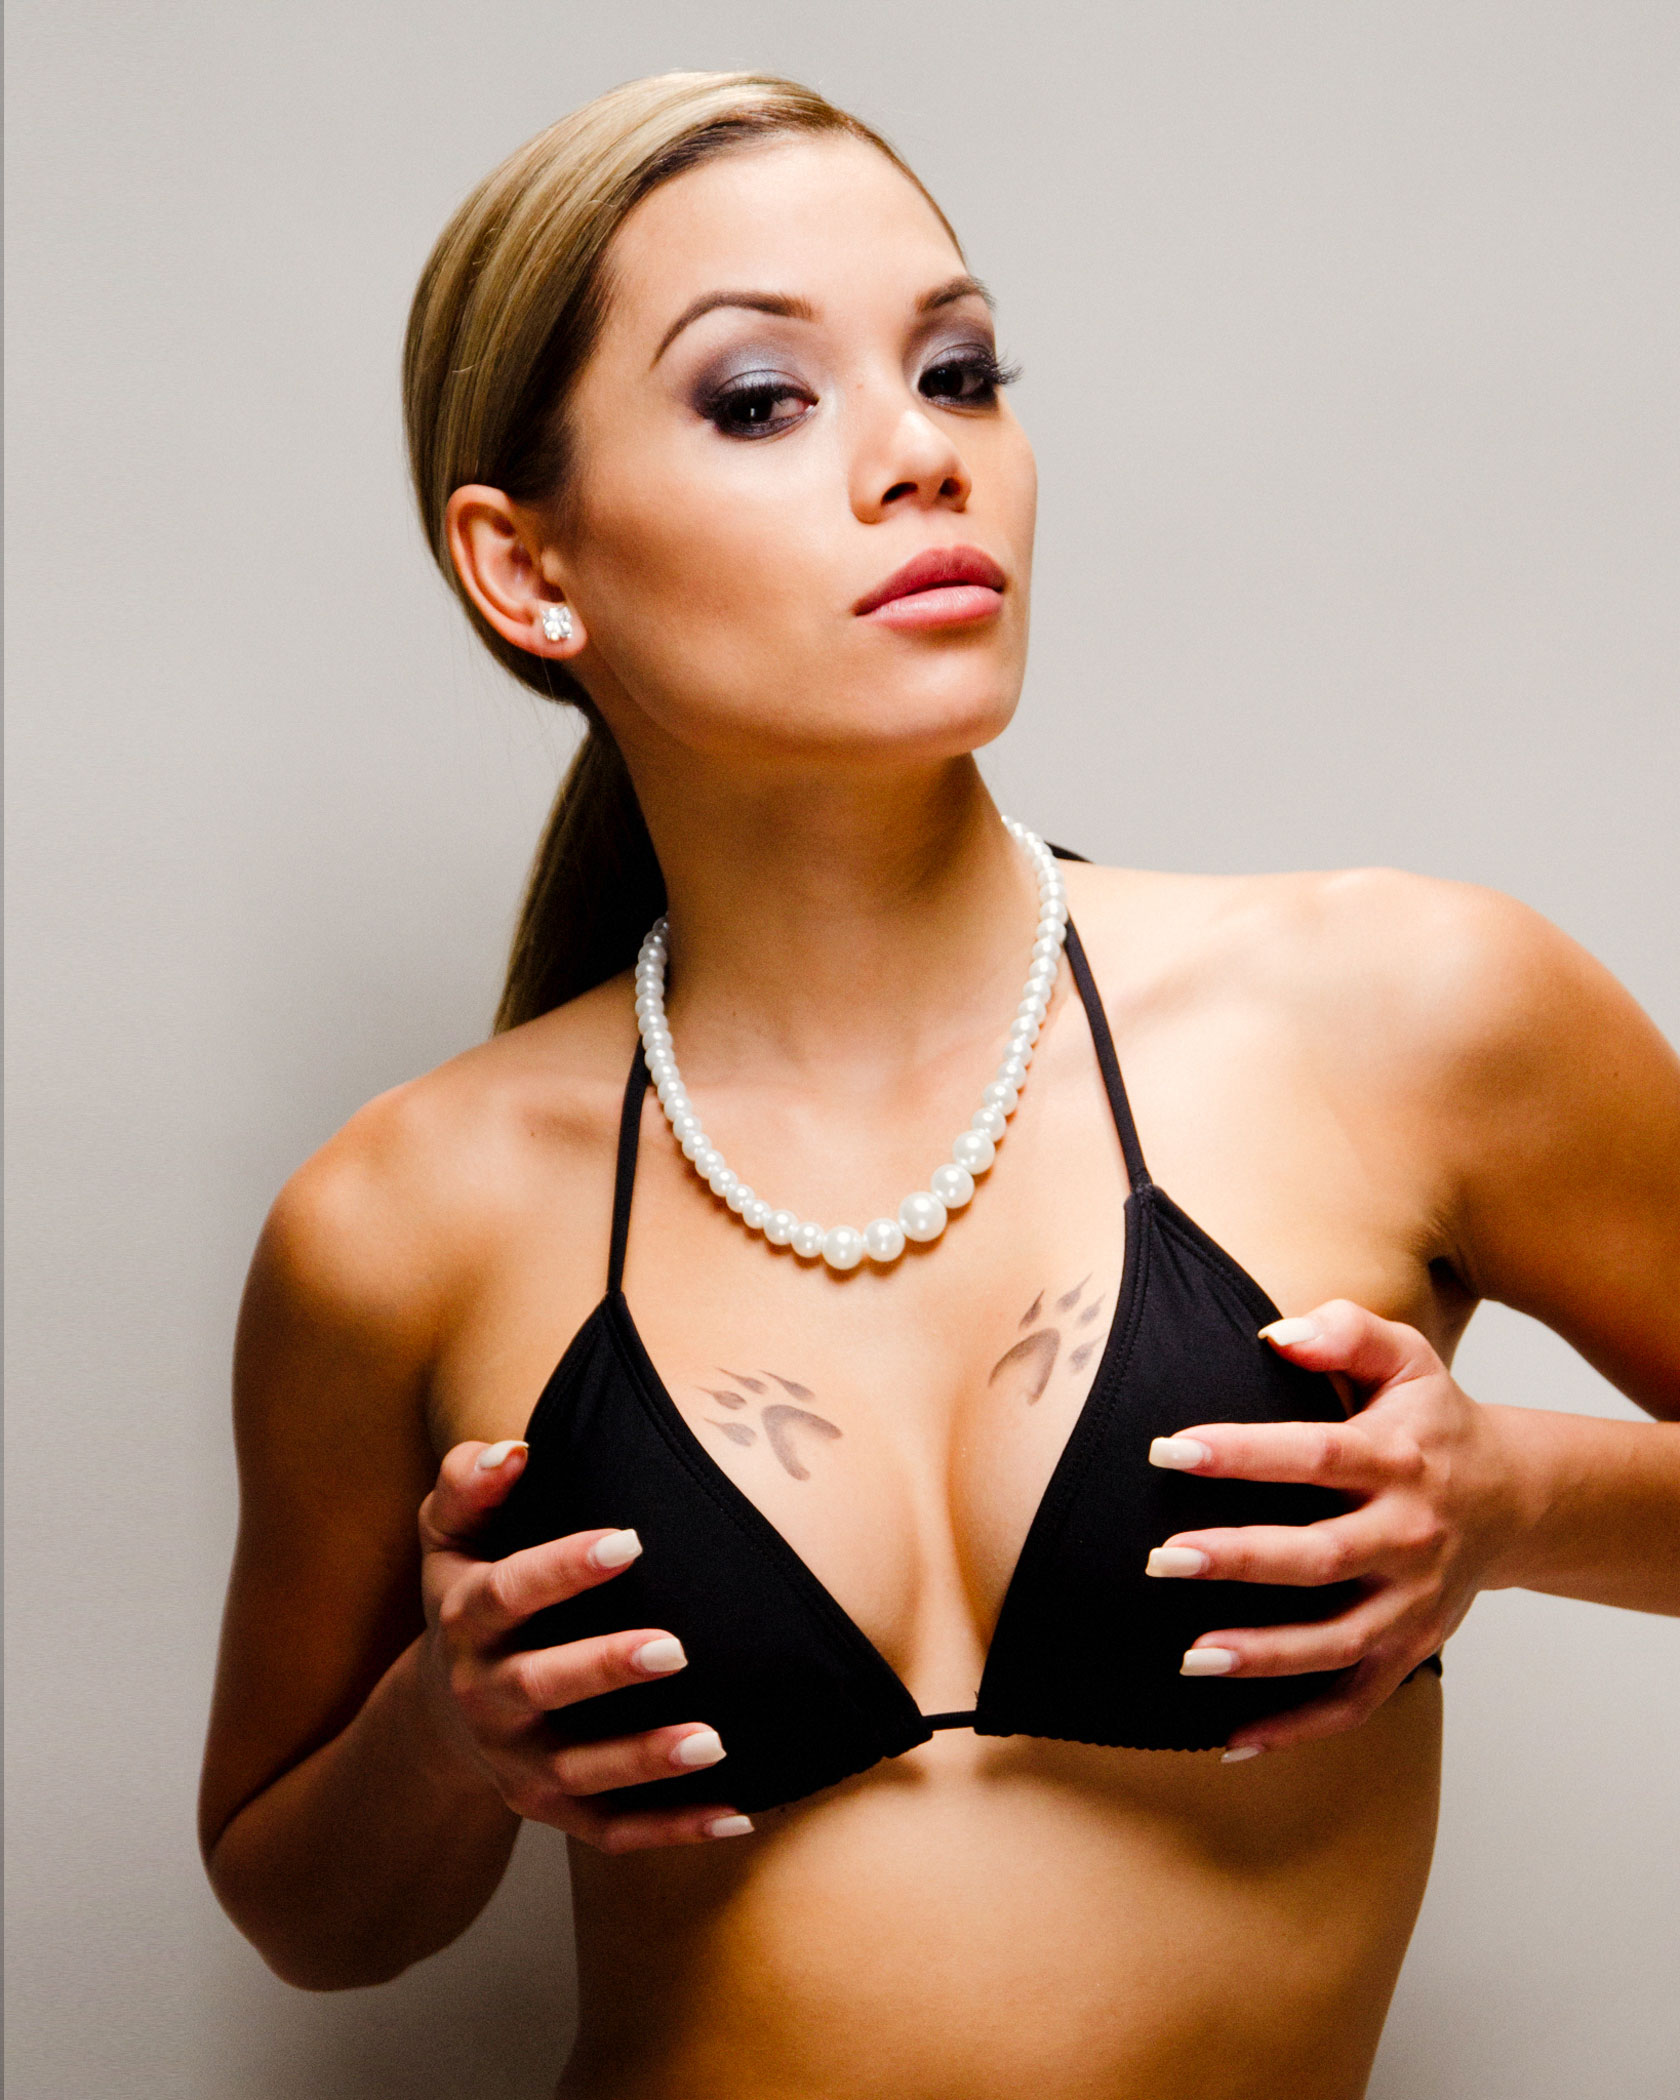 """""""I know you love flossing with X, busting them checks, getting tattoos - paw prints on your chest"""" - Philly, Philly (""""Ruff Ryders' First Lady"""" 1999). Paw print tattoos - """"I just think it's a form of expression, just like going in the studio, writing a song,"""" says Eve about tattooing. She had wanted paw prints for a tattoo but having them inked on her chest was originally posed as a dare by a friend. """"Now that's how people recognize me."""" -  Eve """"Billboard's Marked Up"""" by Billboard Staff on Billboard 03.26.13 / from Philadelphia PA"""